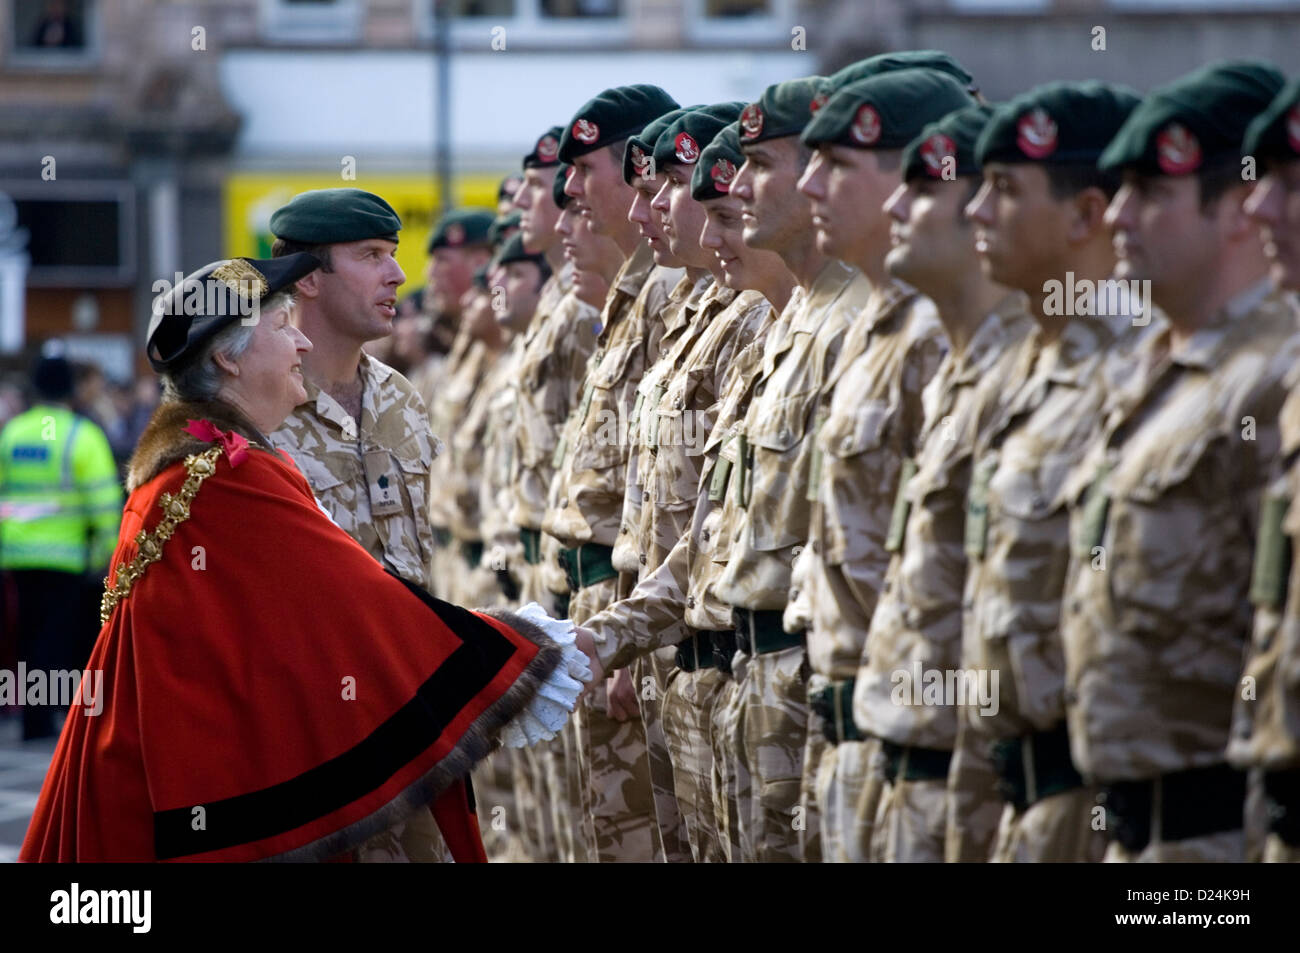 The Mayor greeting members of the British army. - Stock Image